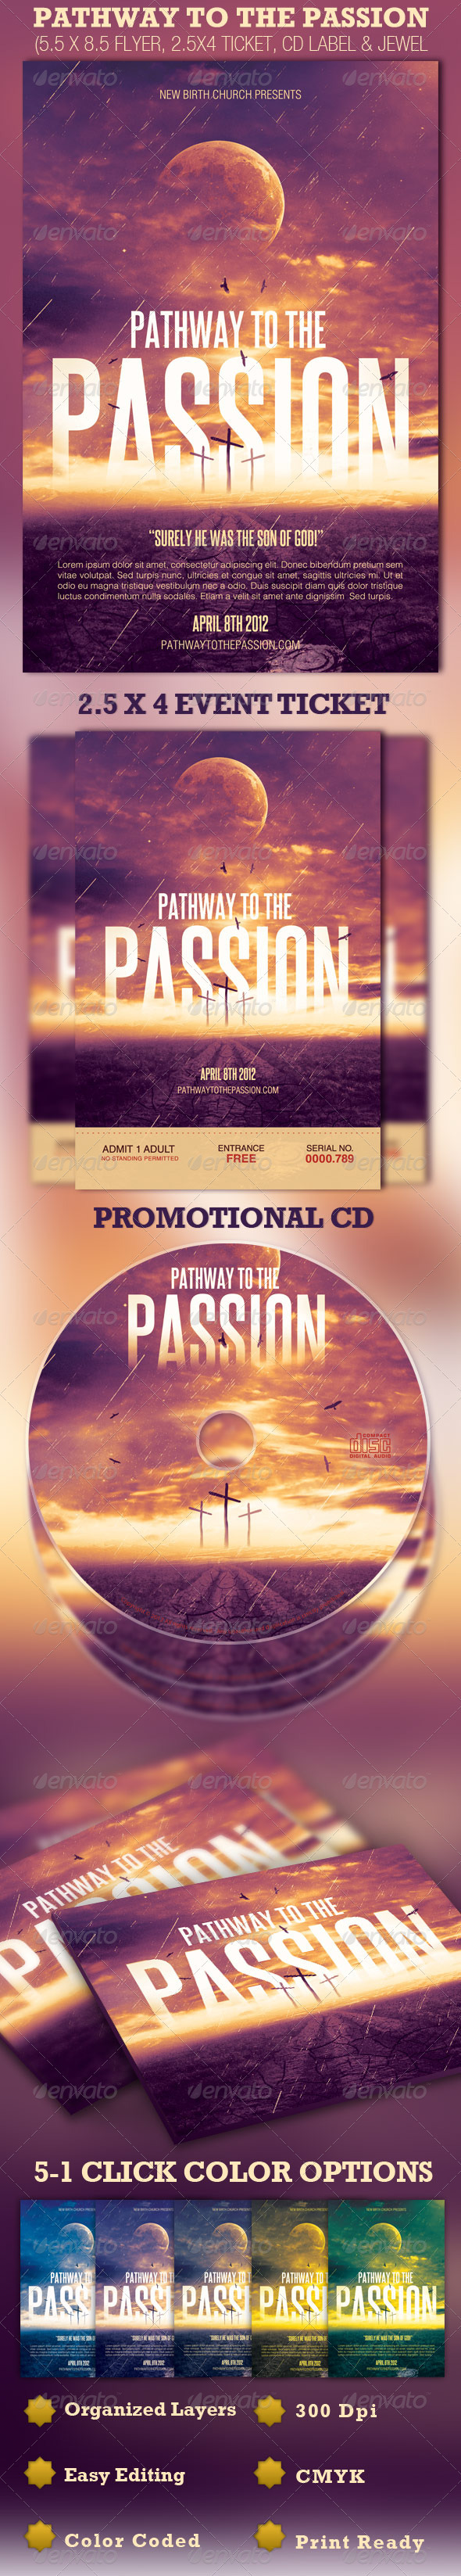 GraphicRiver Pathway to the Passion Flyer Ticket and CD 1684481